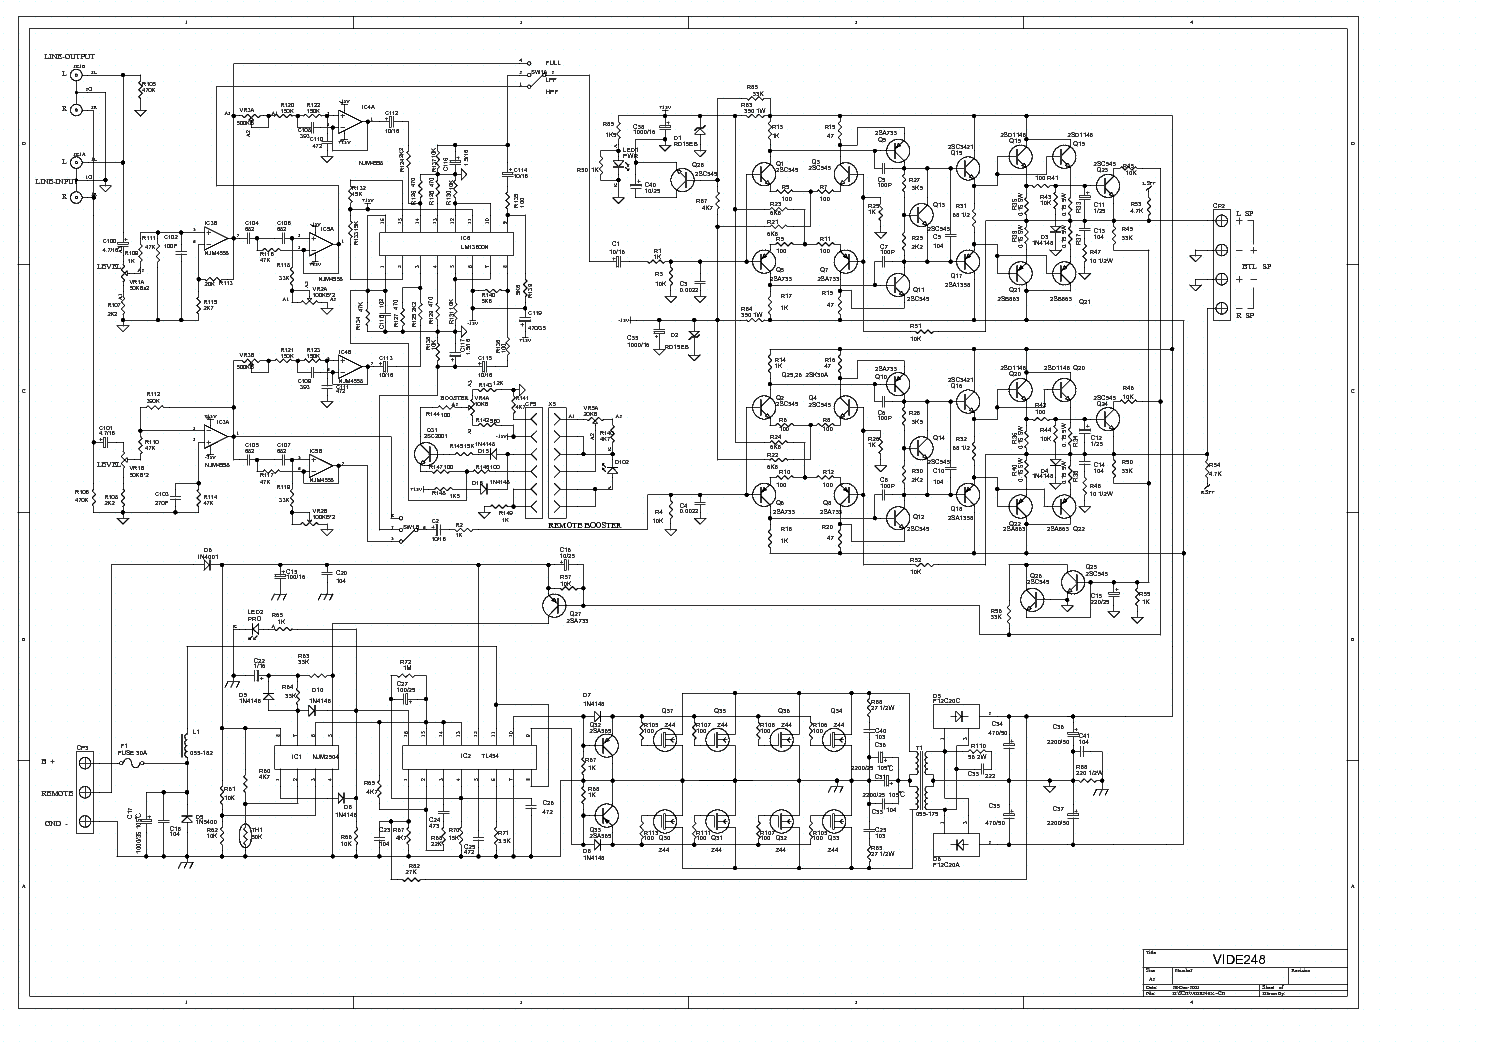 lanzar_vibe248_car_amplifier_sch.pdf_1 lanzar wiring diagram lanzar maxp124d wiring diagram \u2022 free wiring vibe subwoofer wiring diagram at crackthecode.co